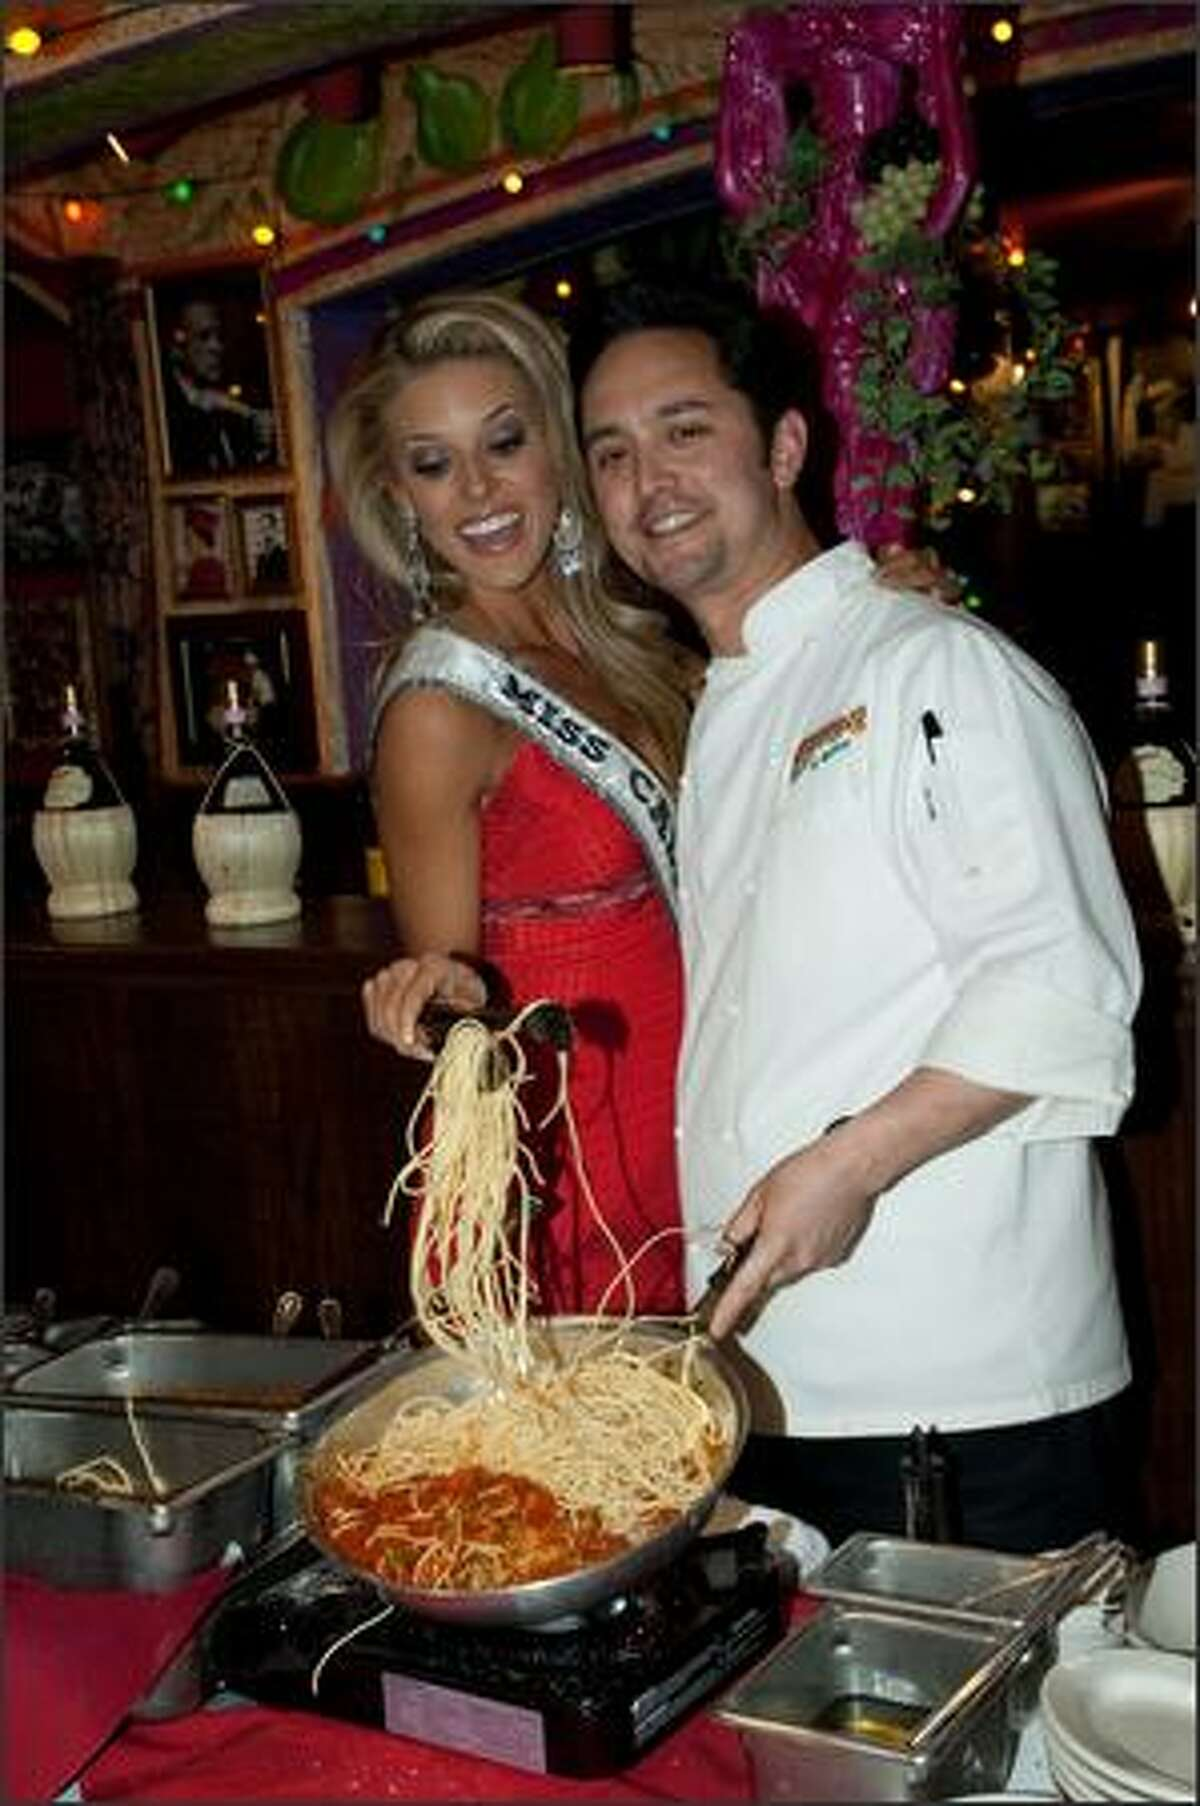 Carrie Prejean, Miss California USA 2009, cooks with Corporate Chef Michael Miyahara at Buca di Beppo.